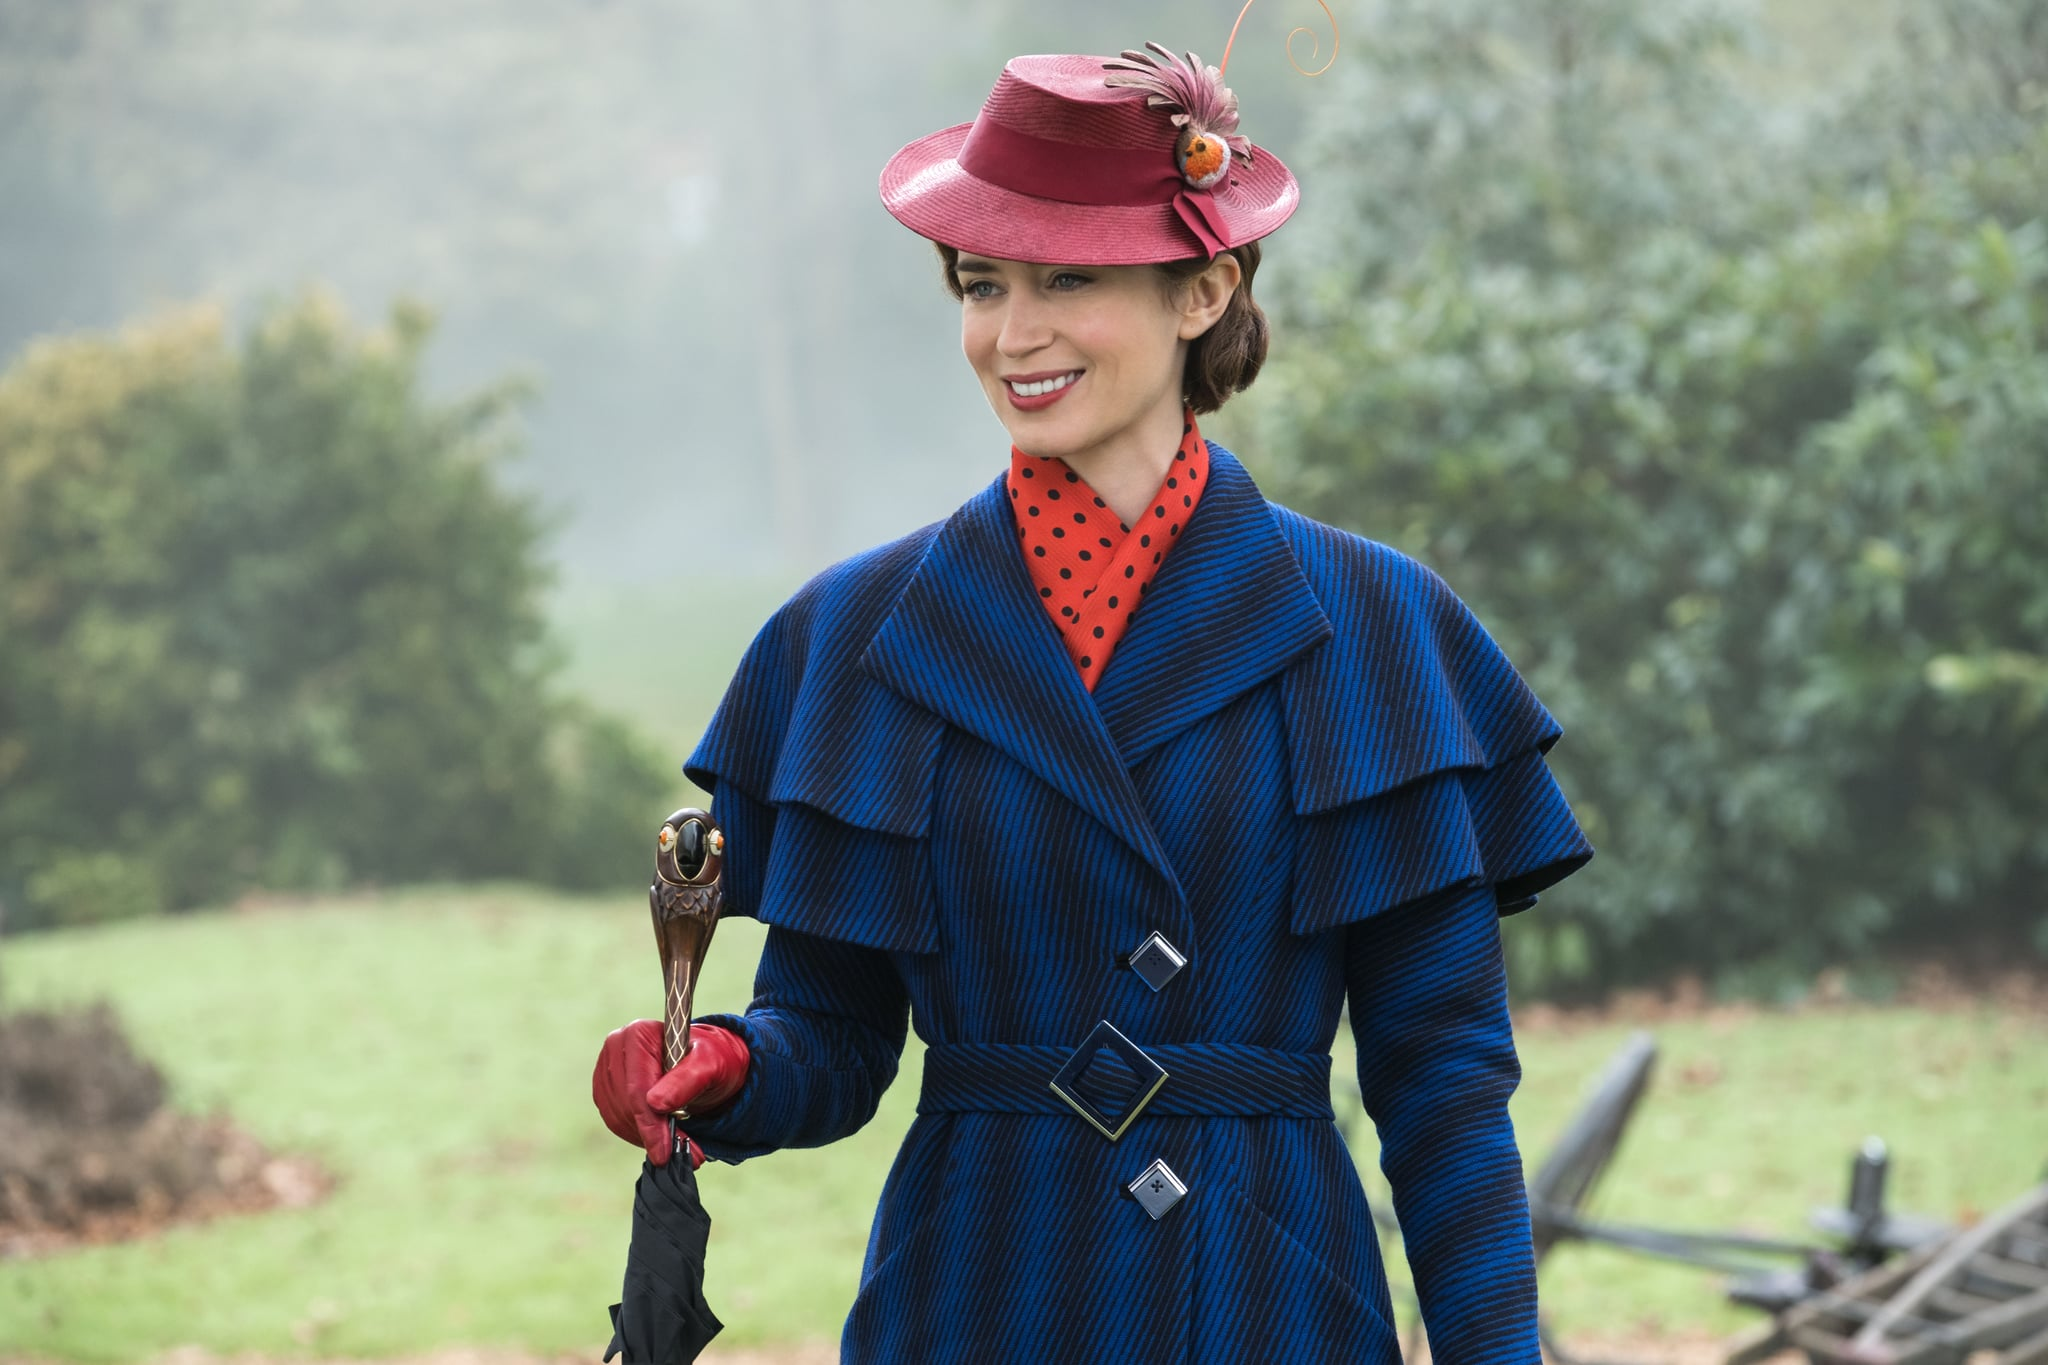 Emily Blunt is Mary Poppins in Disney's MARY POPPINS RETURNS, a sequel to the 1964 MARY POPPINS, which takes audiences on an entirely new adventures with the practically perfect nanny and the Banks family.